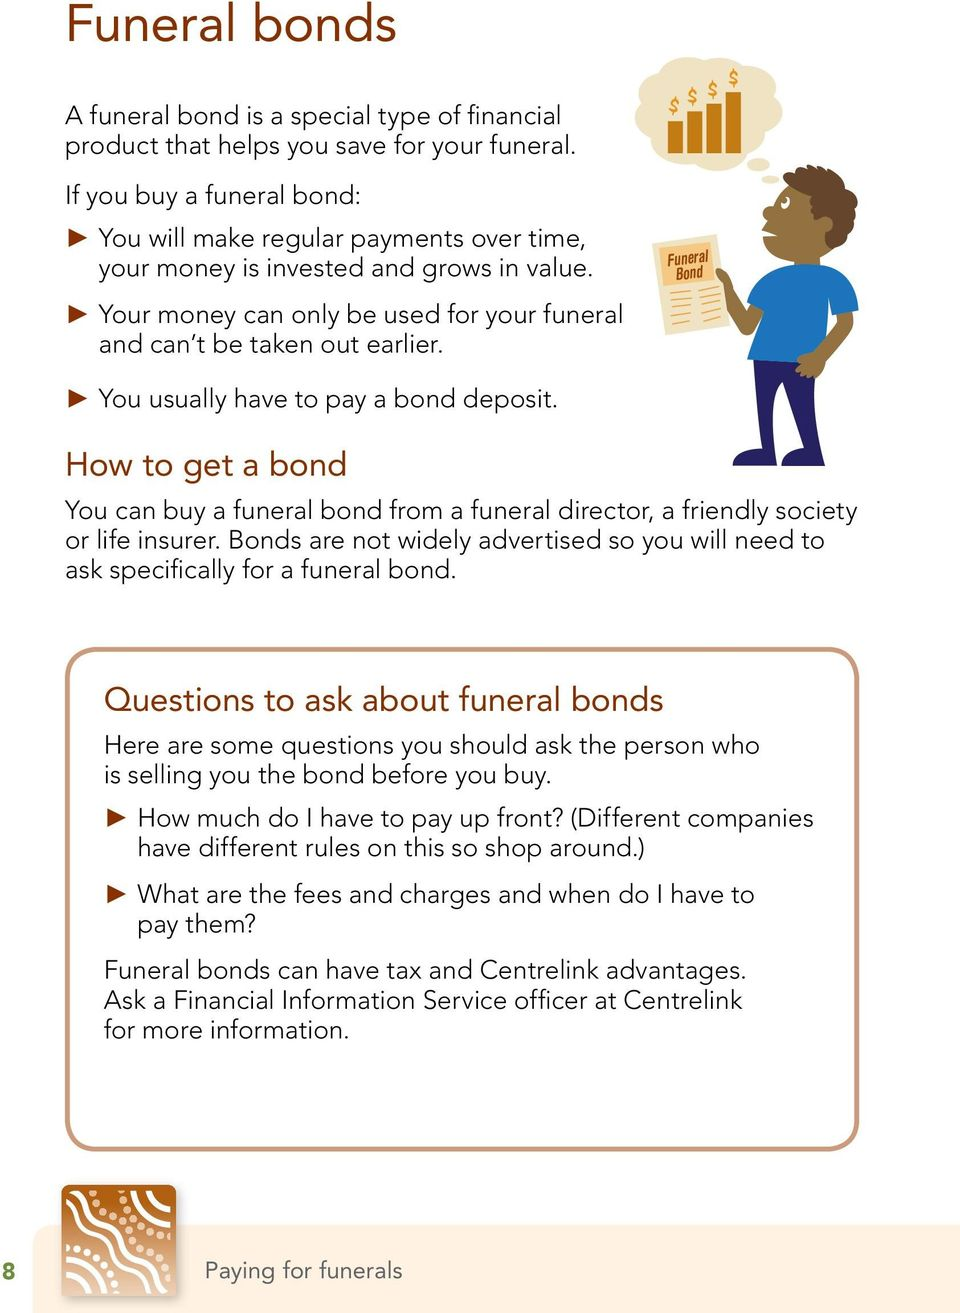 Funeral Bond You usually have to pay a bond deposit. How to get a bond You can buy a funeral bond from a funeral director, a friendly society or life insurer.